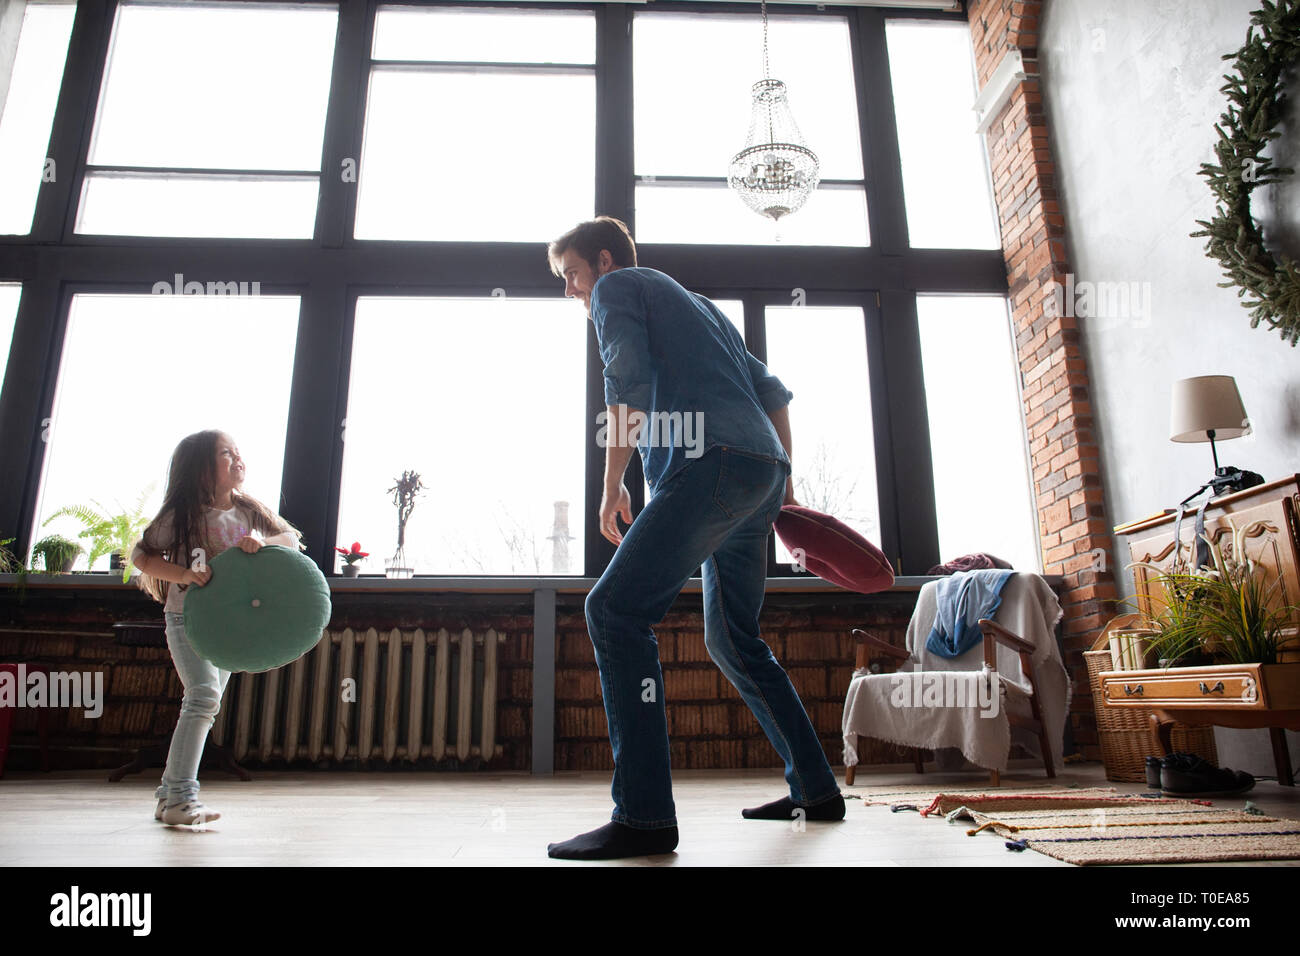 Father and his child playing together. Girl and dad having fun and fighting pillows. Family holiday and togetherness. Stock Photo